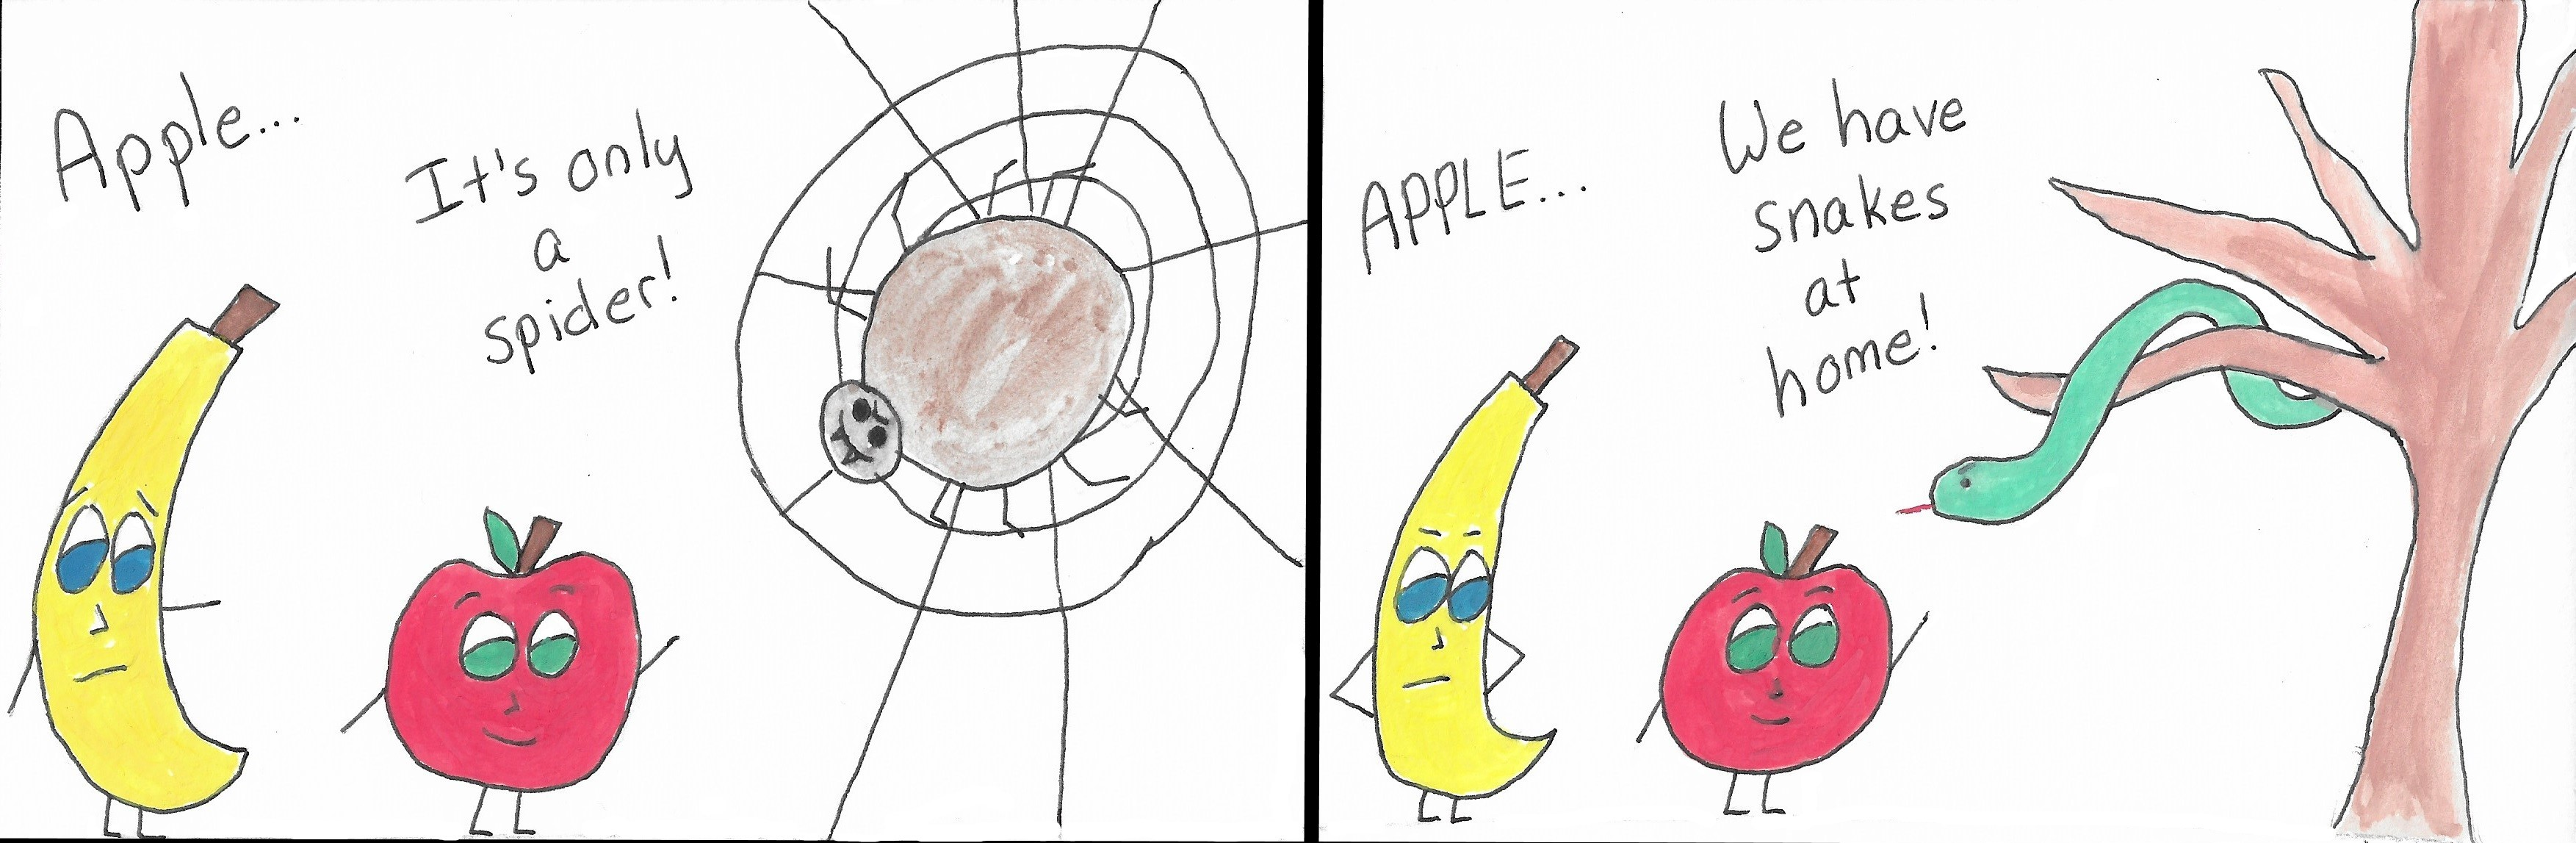 (Looks at an enormous fanged spider.) Banana: Apple... Apple: It's only a spider! (Looking at a grumpy looking snake) Banana: APPLE... Apple: We have snakes as home!